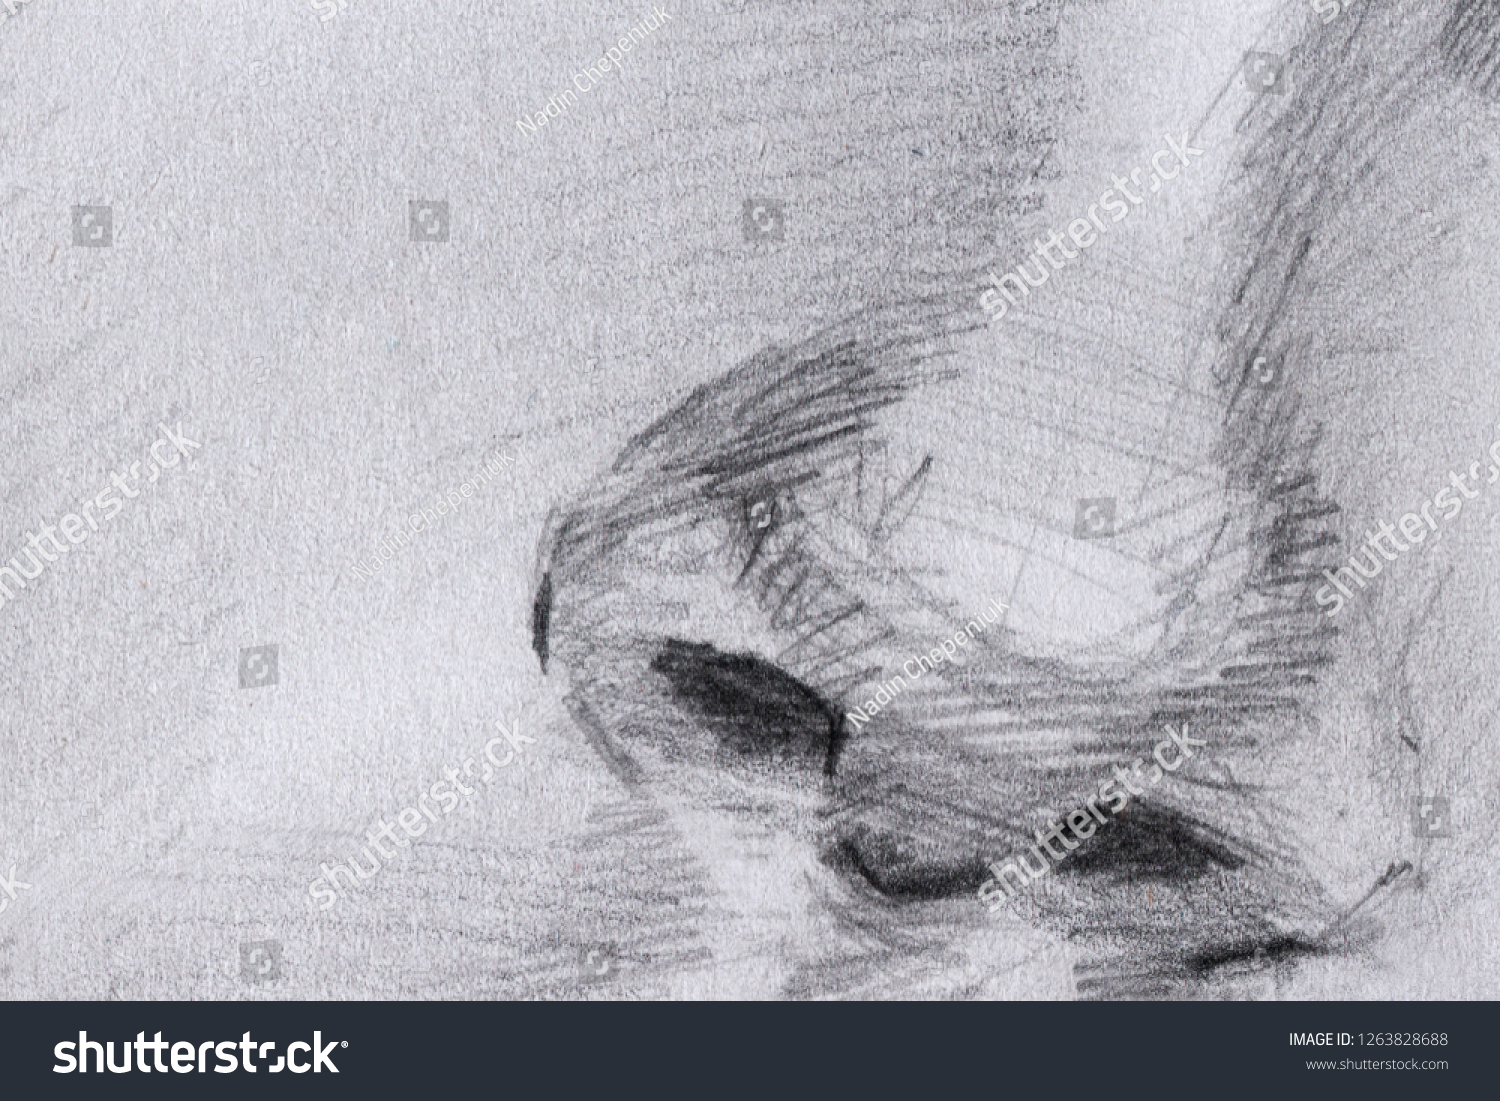 Pencil drawing nose sketch graphics